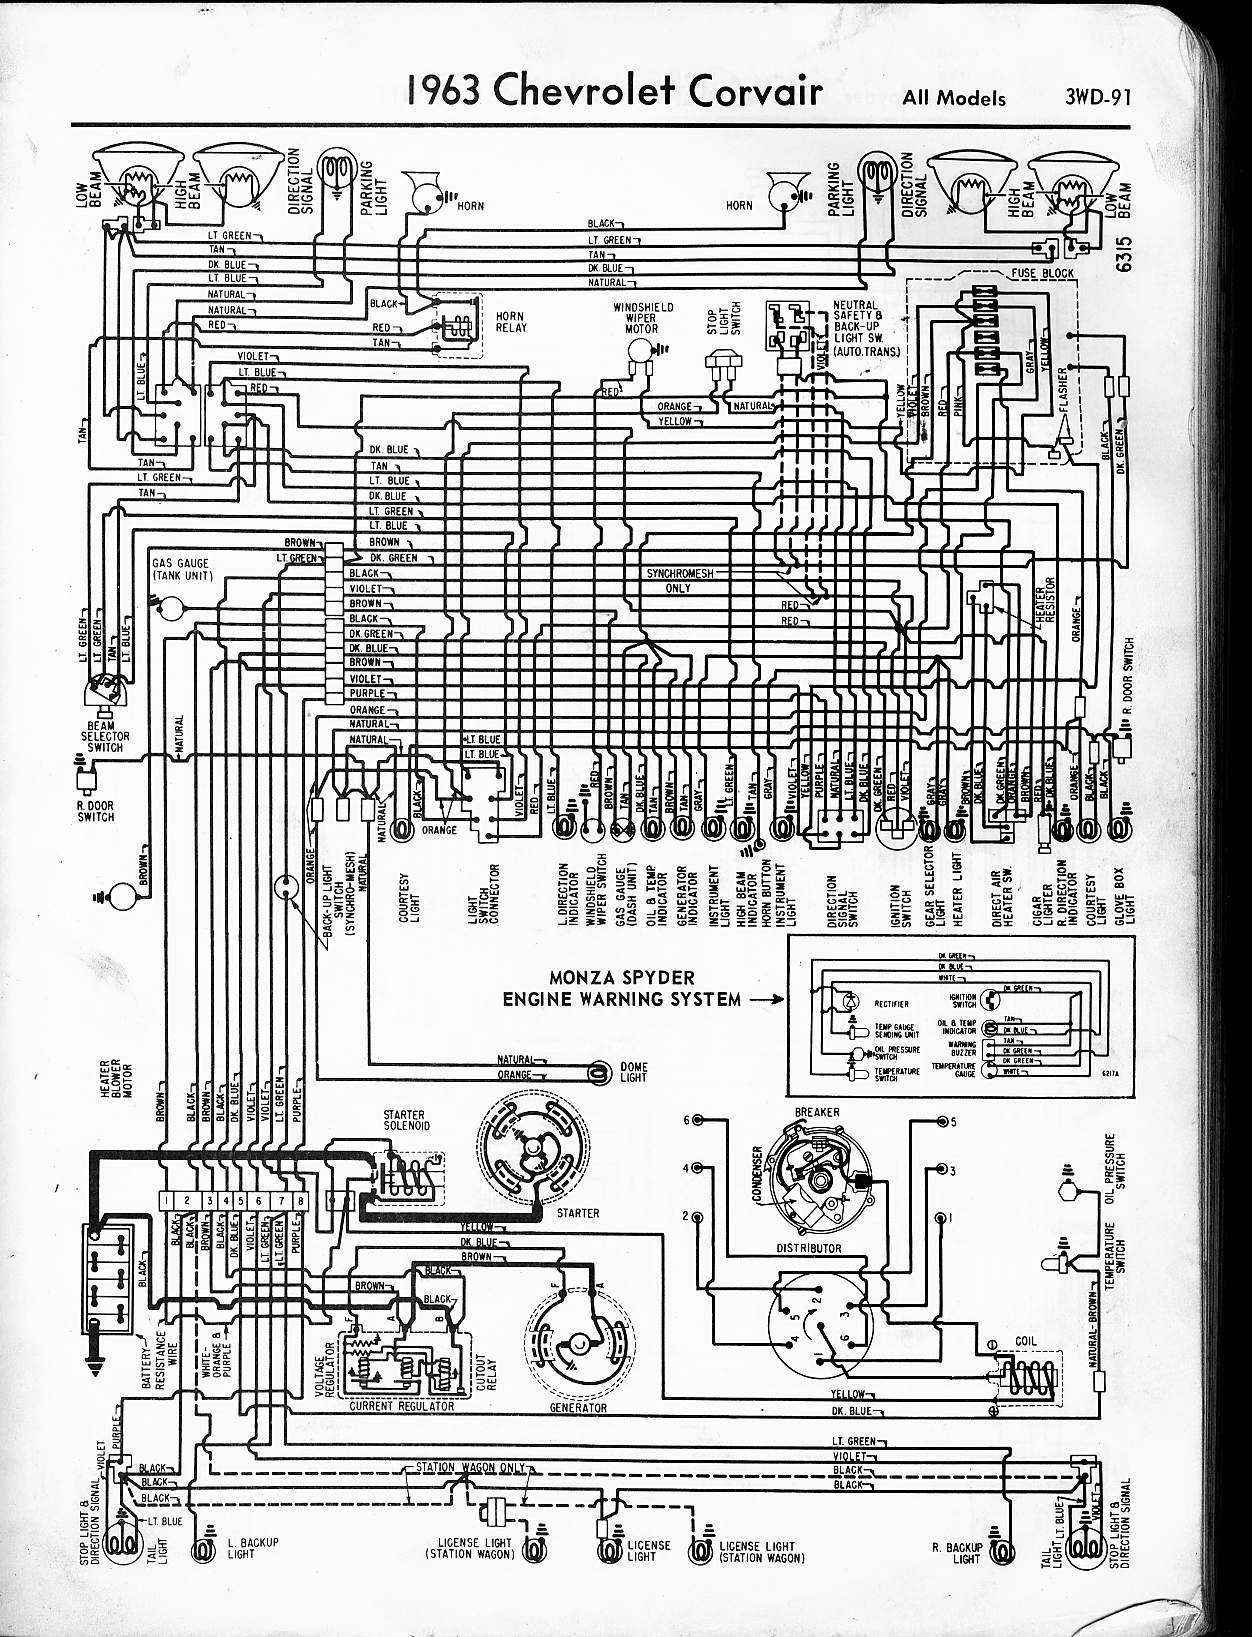 1964 Gm Engine Wiring Harness Diagram Libraries For 1979 Corvette Door Handle Likewise Diagram1964 Box